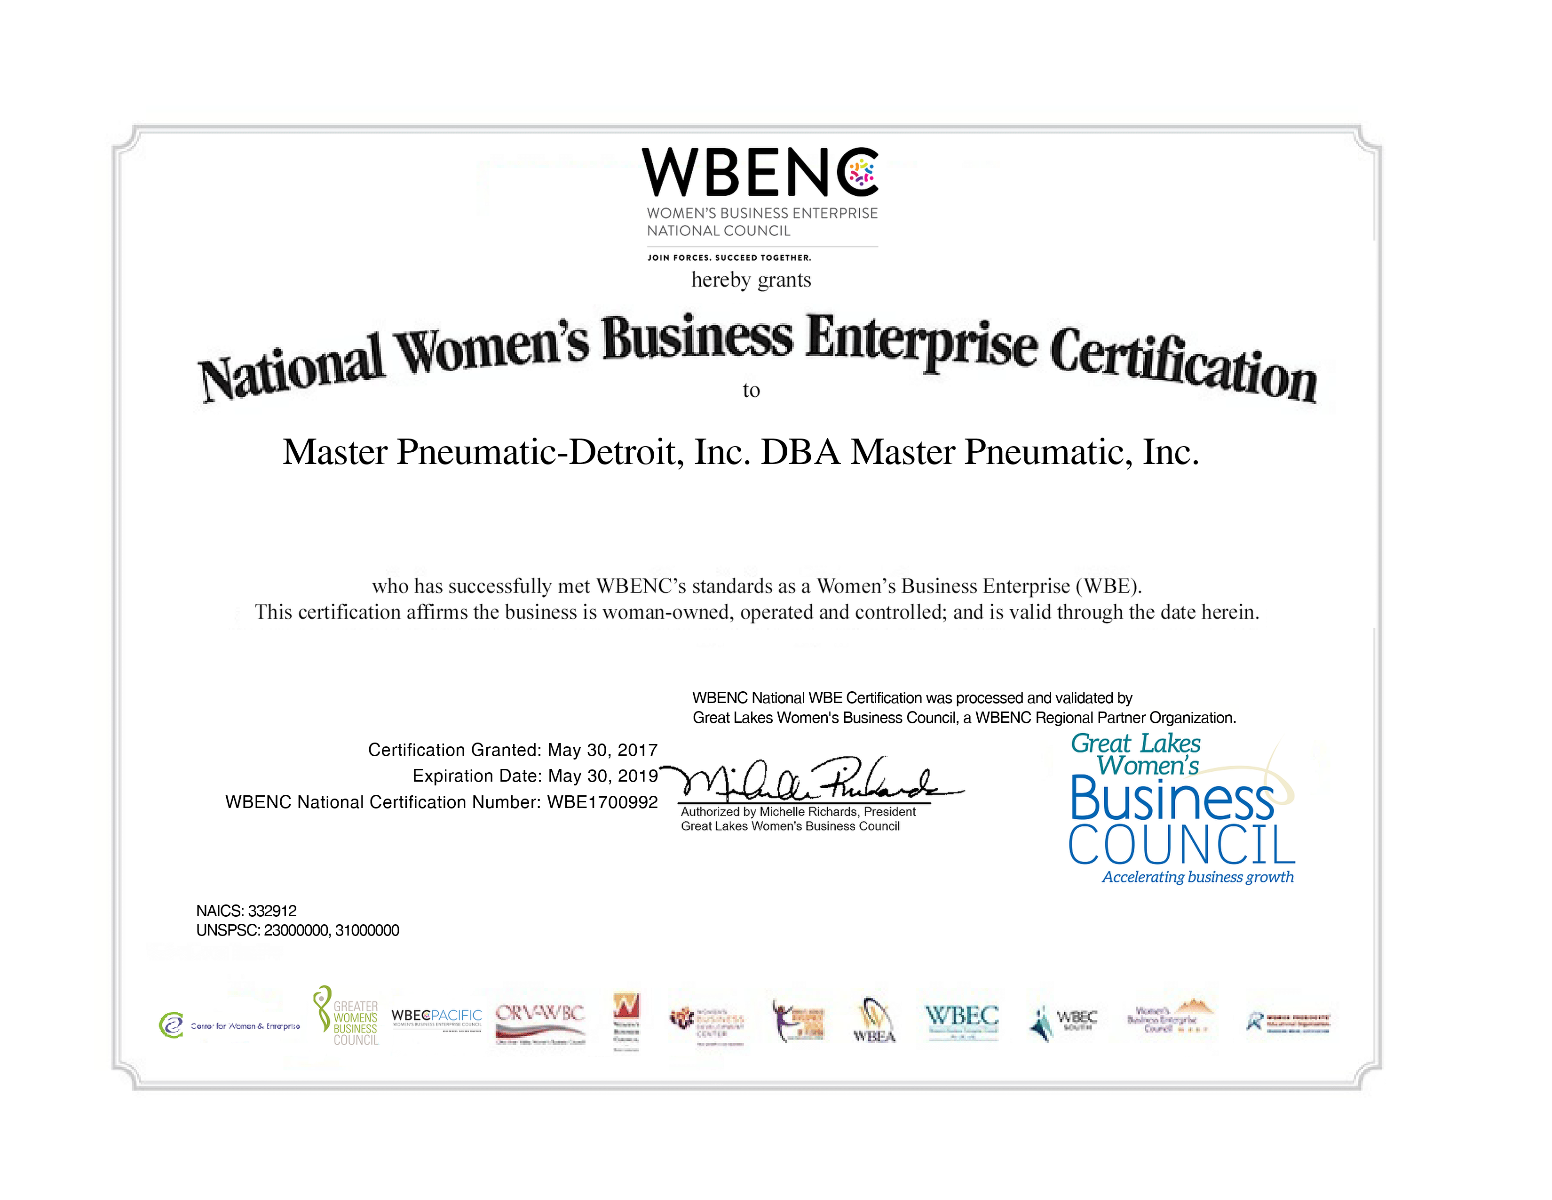 National Women's Business Enterprise Certification